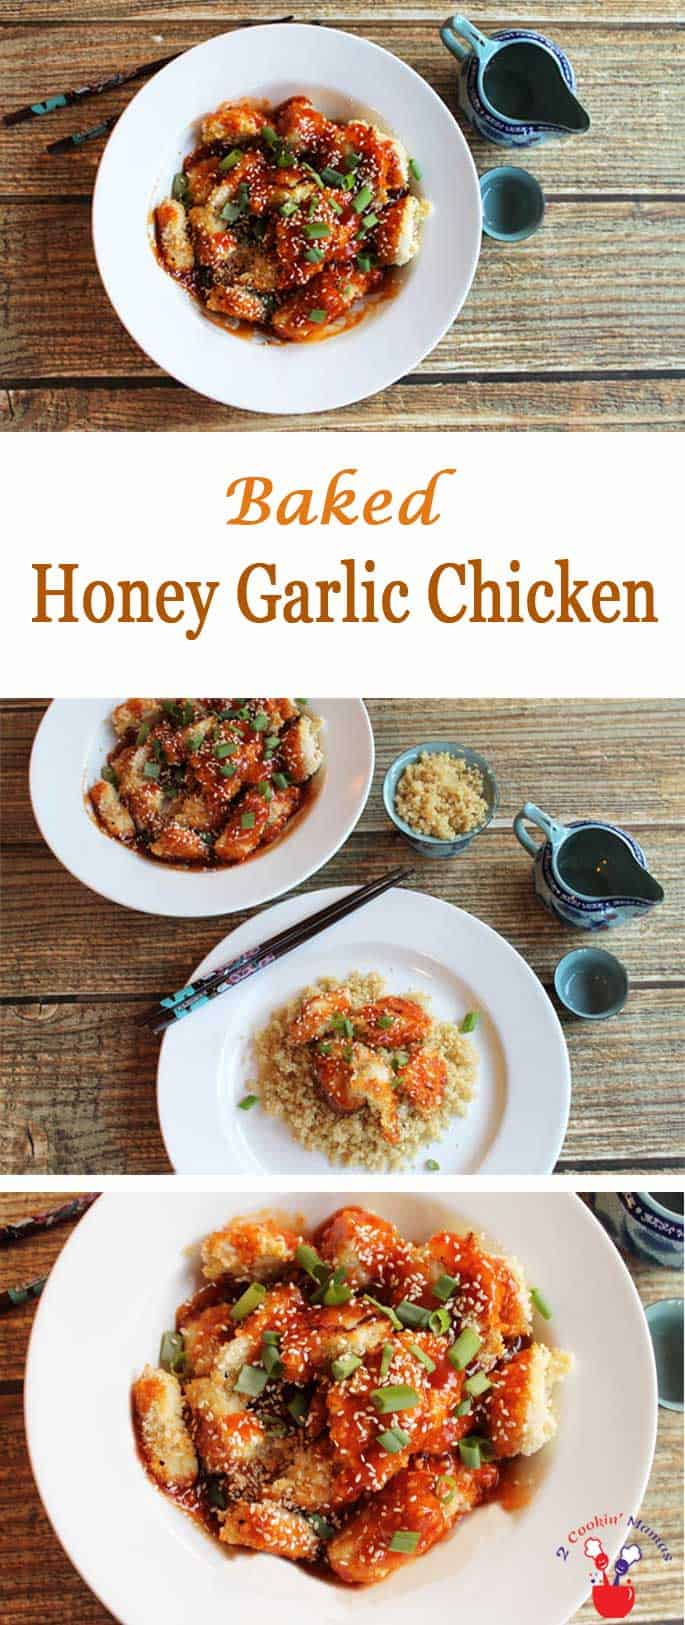 "Baked Honey Garlic Chicken | 2 Cookin Mamas Get your crunchy along with your healthy with this baked version of an Asian favorite ""Honey Garlic Chicken""."